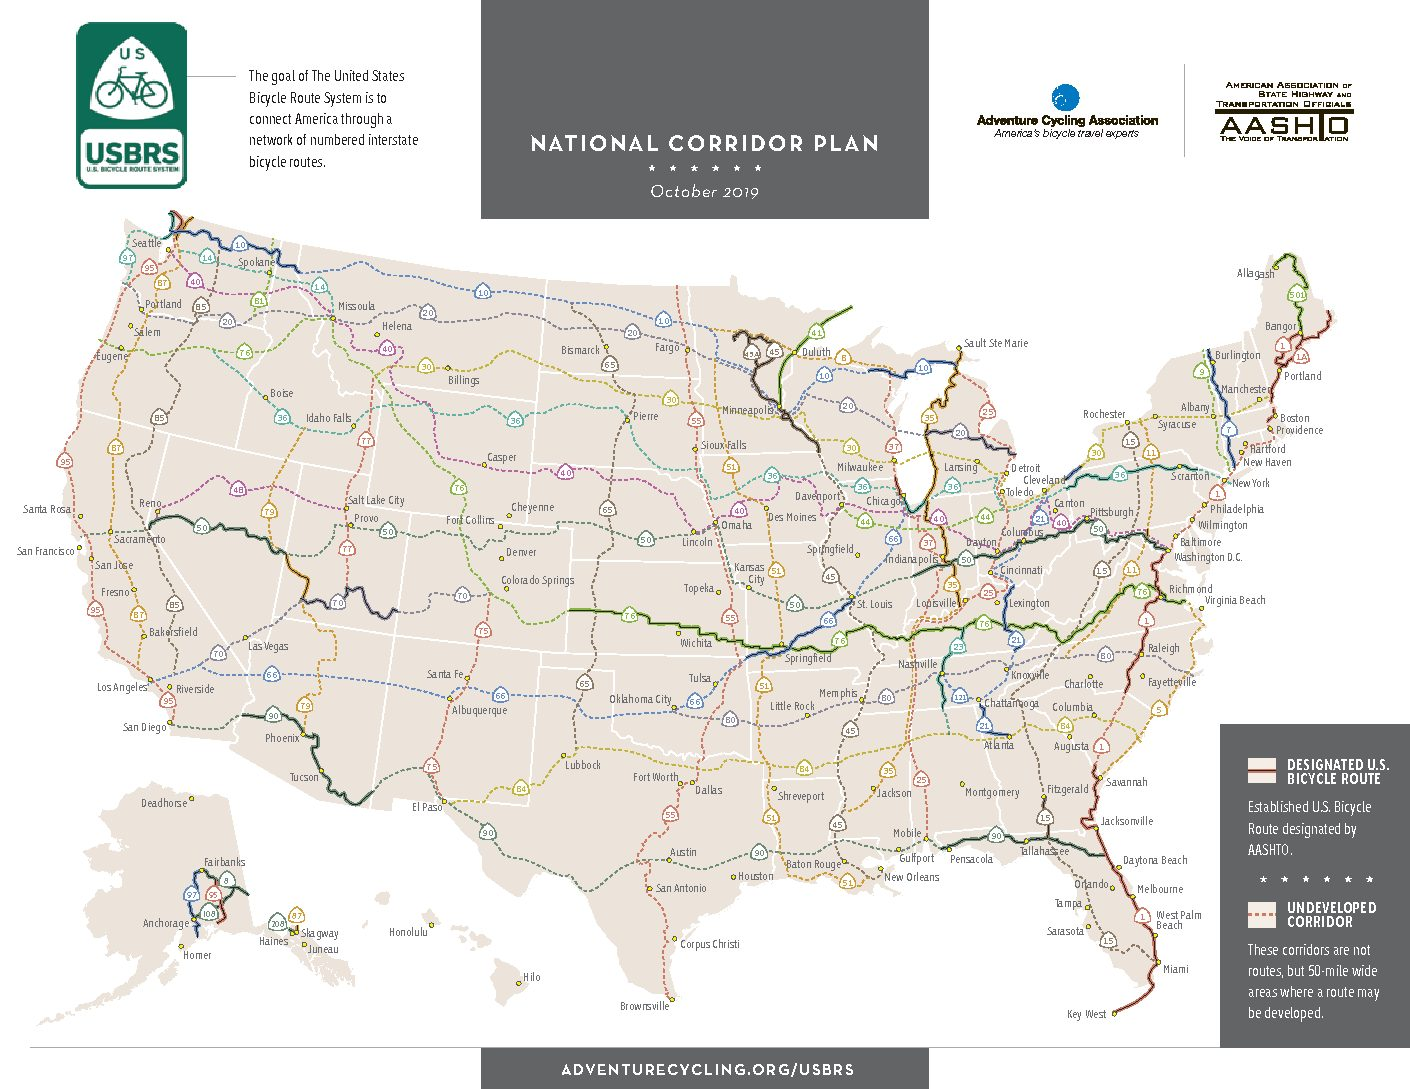 Us Bicycle Route 50 Map AASHTO Approves US Bike Route 50 through the Northern Panhandle